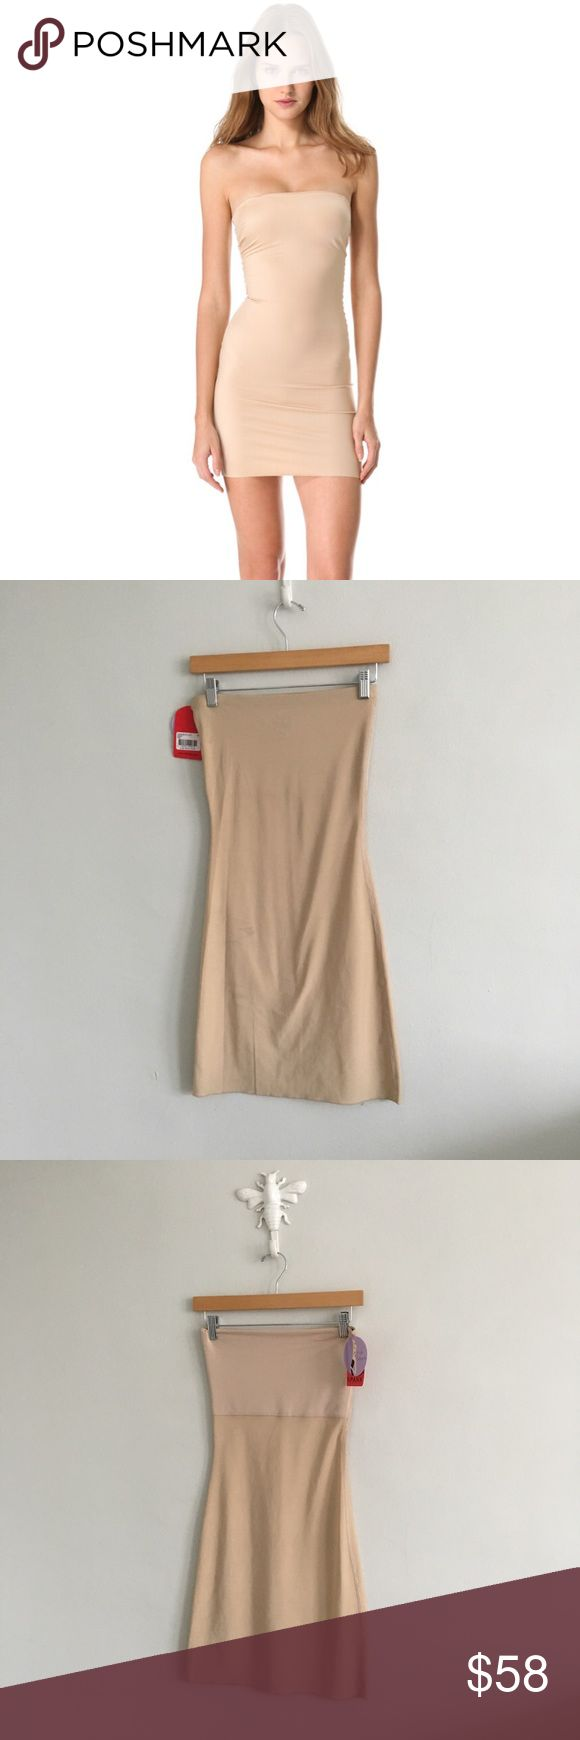 """Spanx Strapless Shapewear Full Slip in Nude There is one faint mark - which should come out when washed - and a tiny pull. New with tags. Chest: 90% polyester, 10% spandex. Body: 87% polyester, 13% spandex. Length: 29"""". Spanx Strapless Full Slip Nude Size M Lingerie Shapewear NWT Strapless SPANX Intimates & Sleepwear Shapewear"""